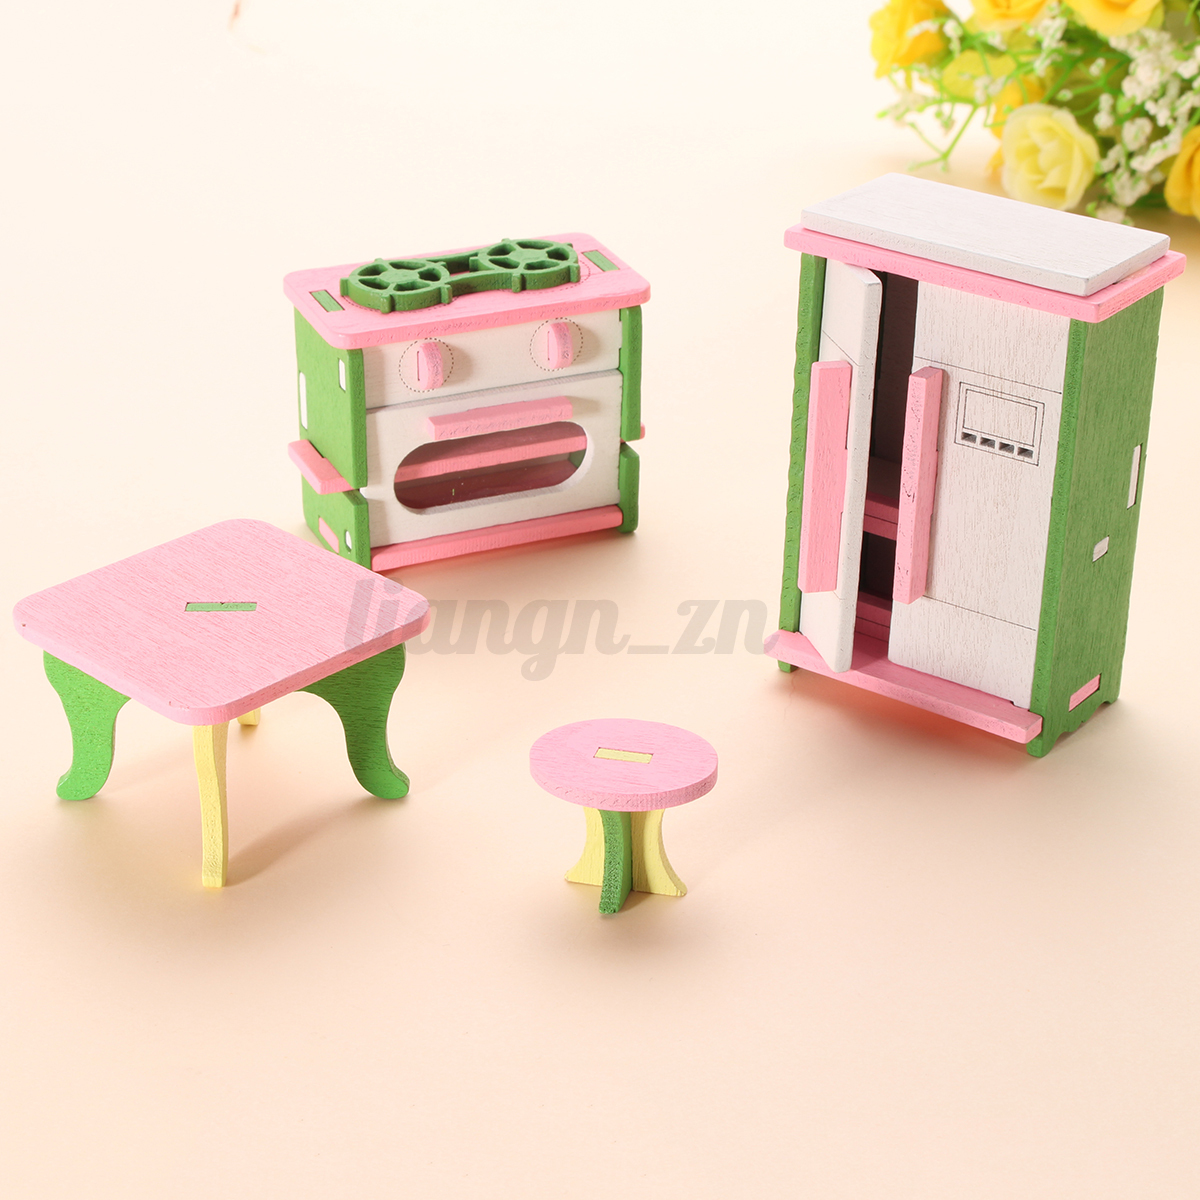 11 set maison poup e meuble chambre lit barbie en bois accessoire diy dollhouse ebay. Black Bedroom Furniture Sets. Home Design Ideas